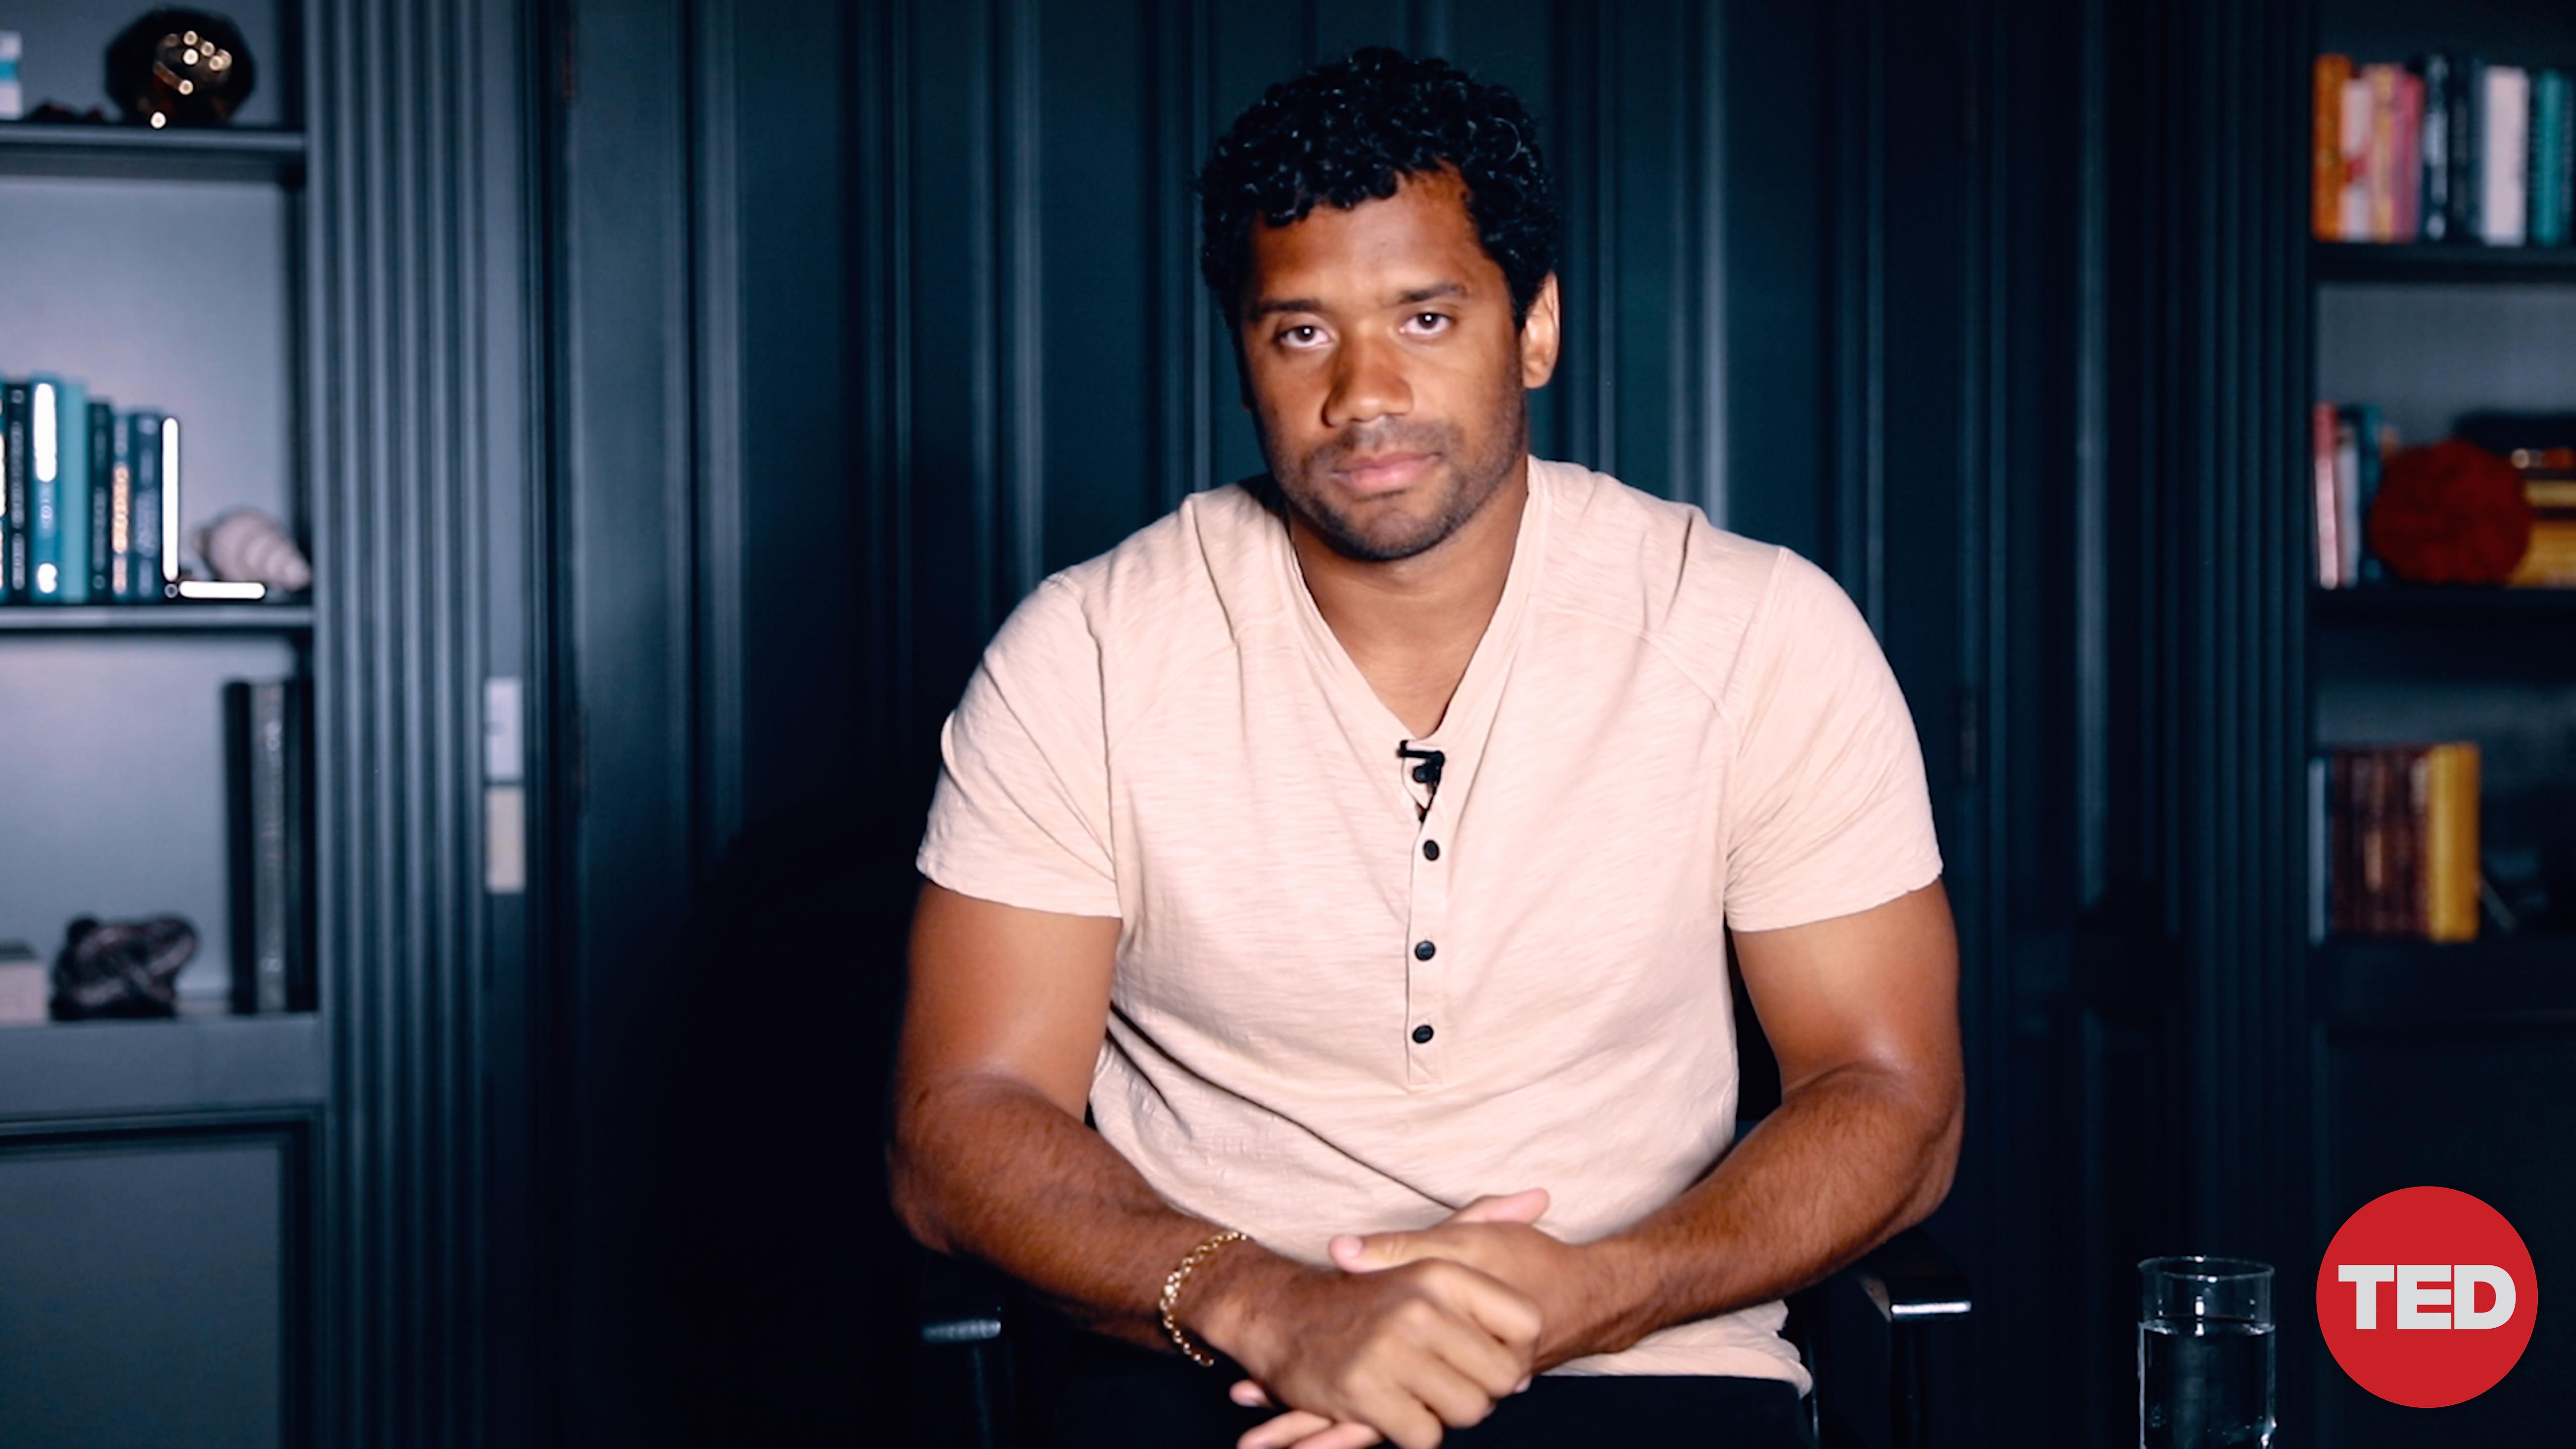 In New Ted Talk Seahawks Qb Russell Wilson Promotes Neutral Thinking To Cope With Pressure Geekwire